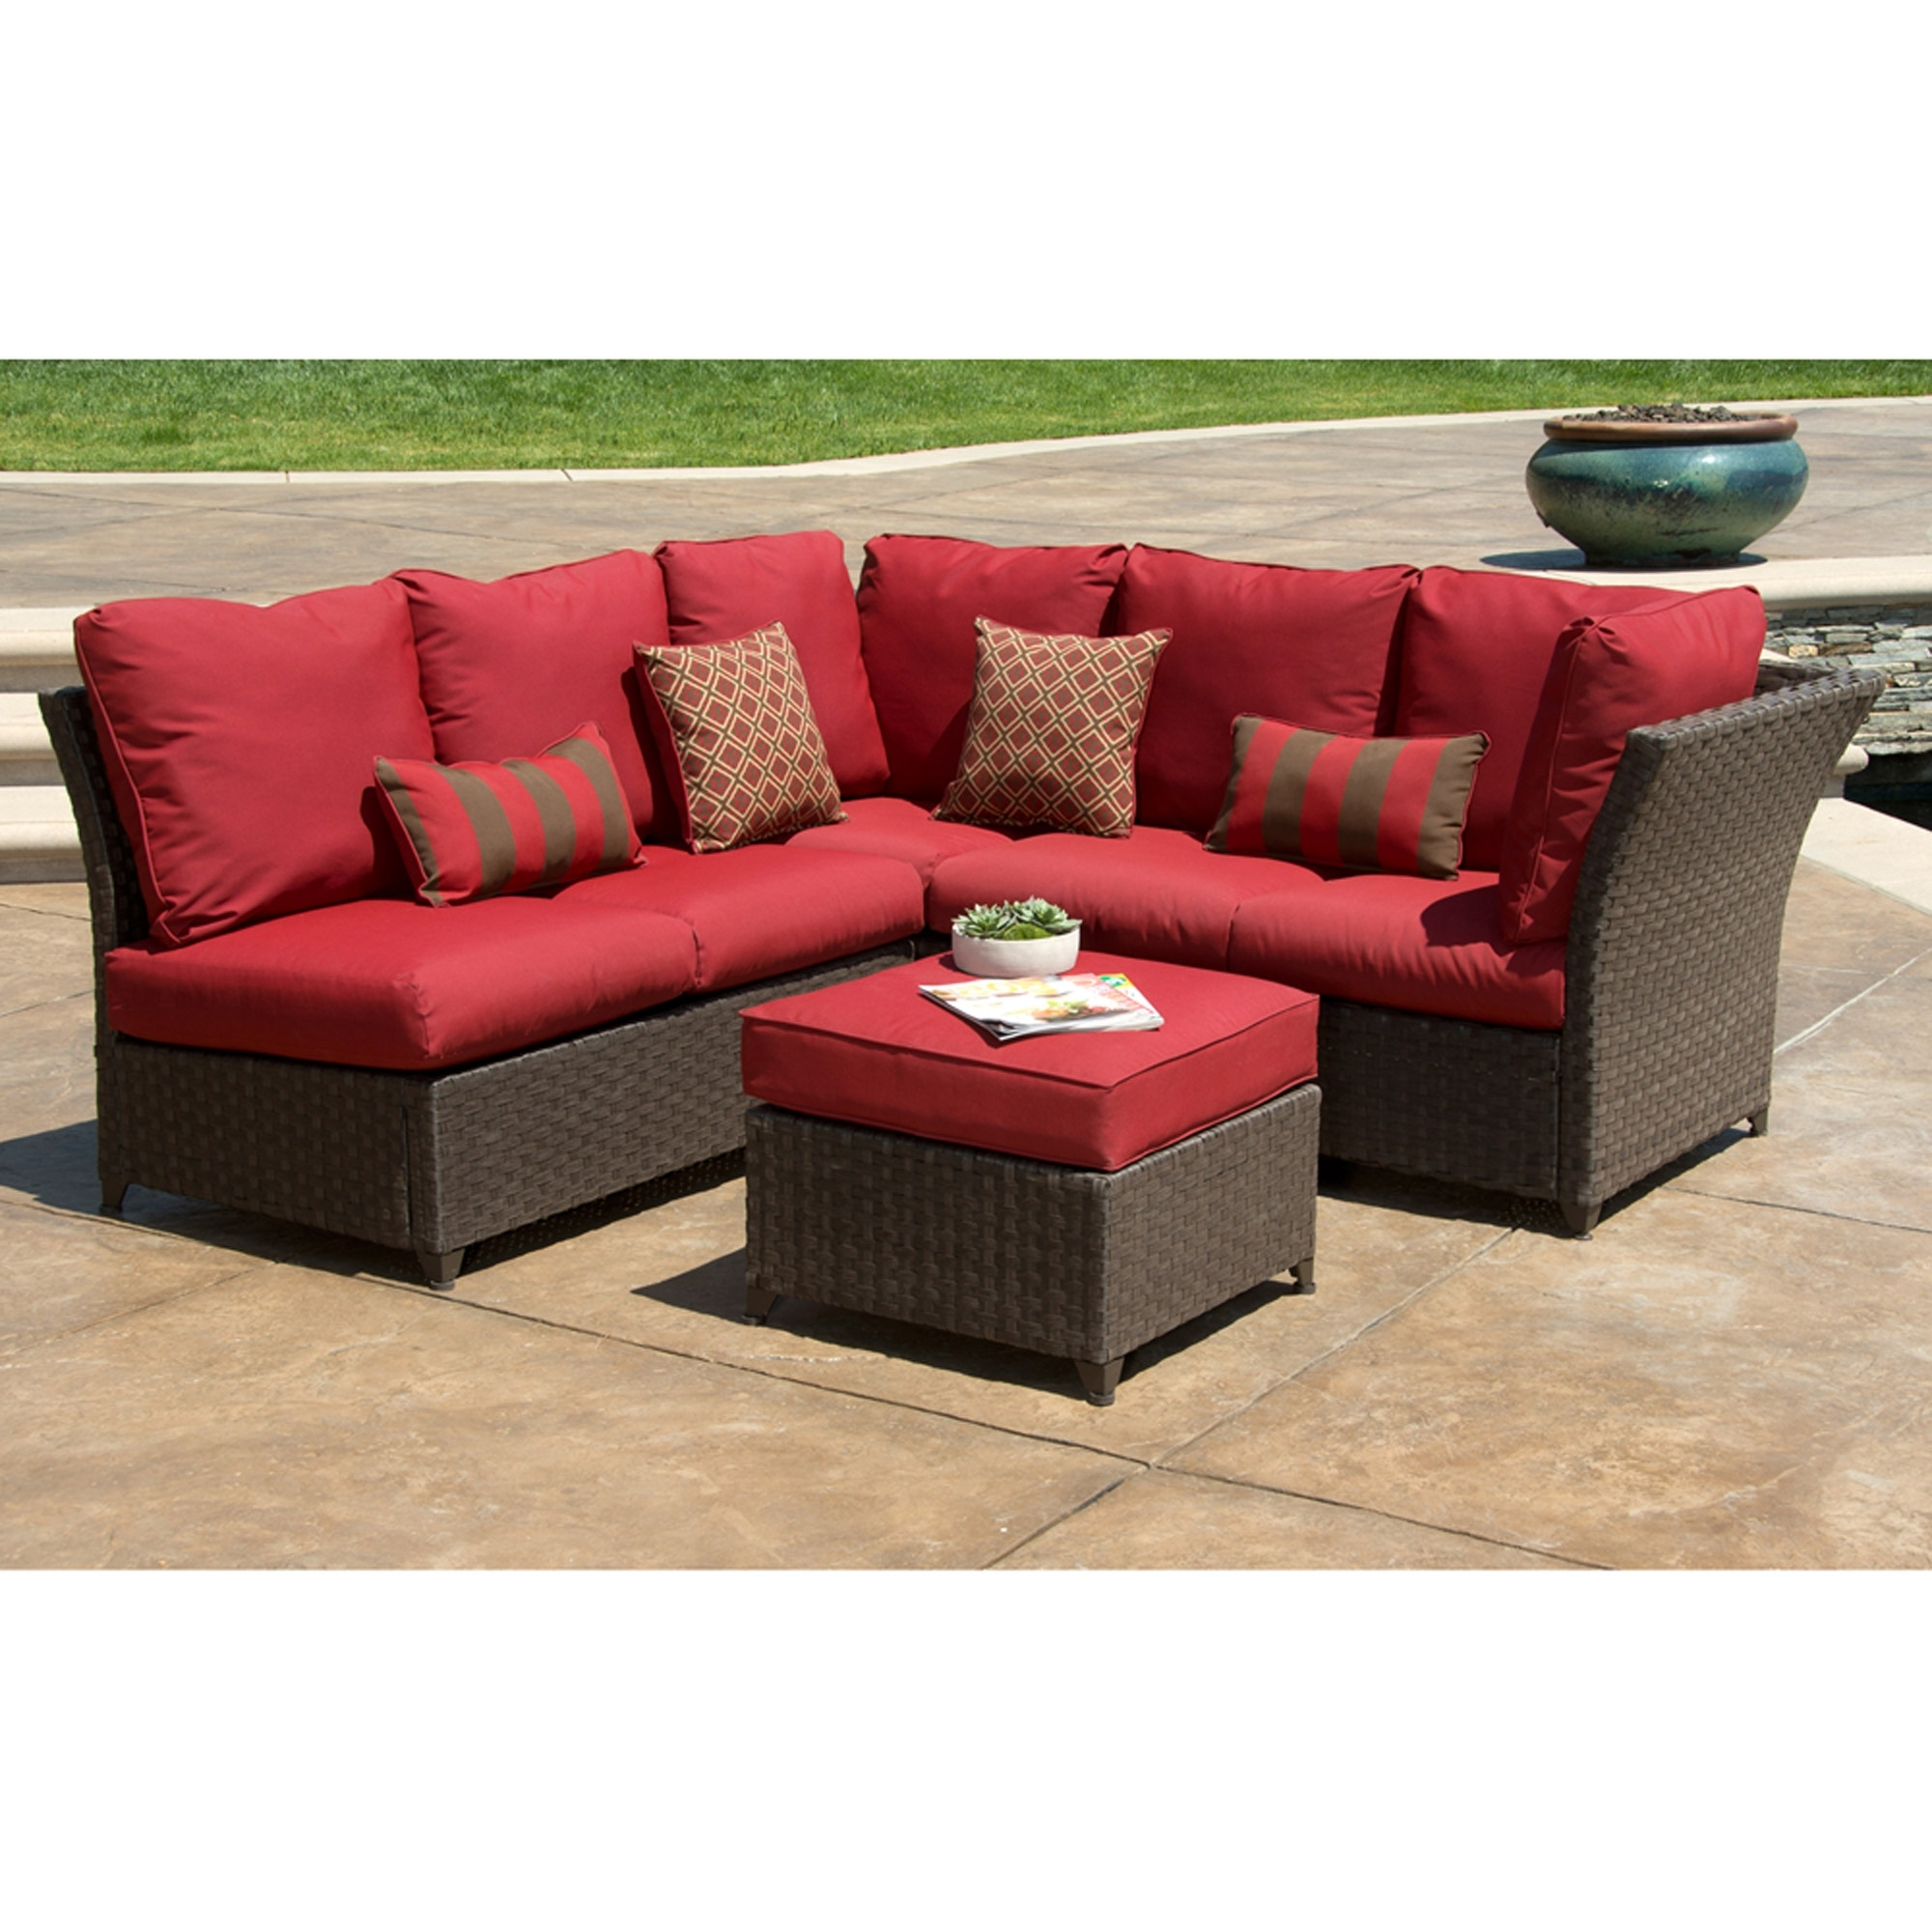 Favorite Sectional Sofas Tampa Fl In Tampa Sectional Sofas (Gallery 10 of 20)